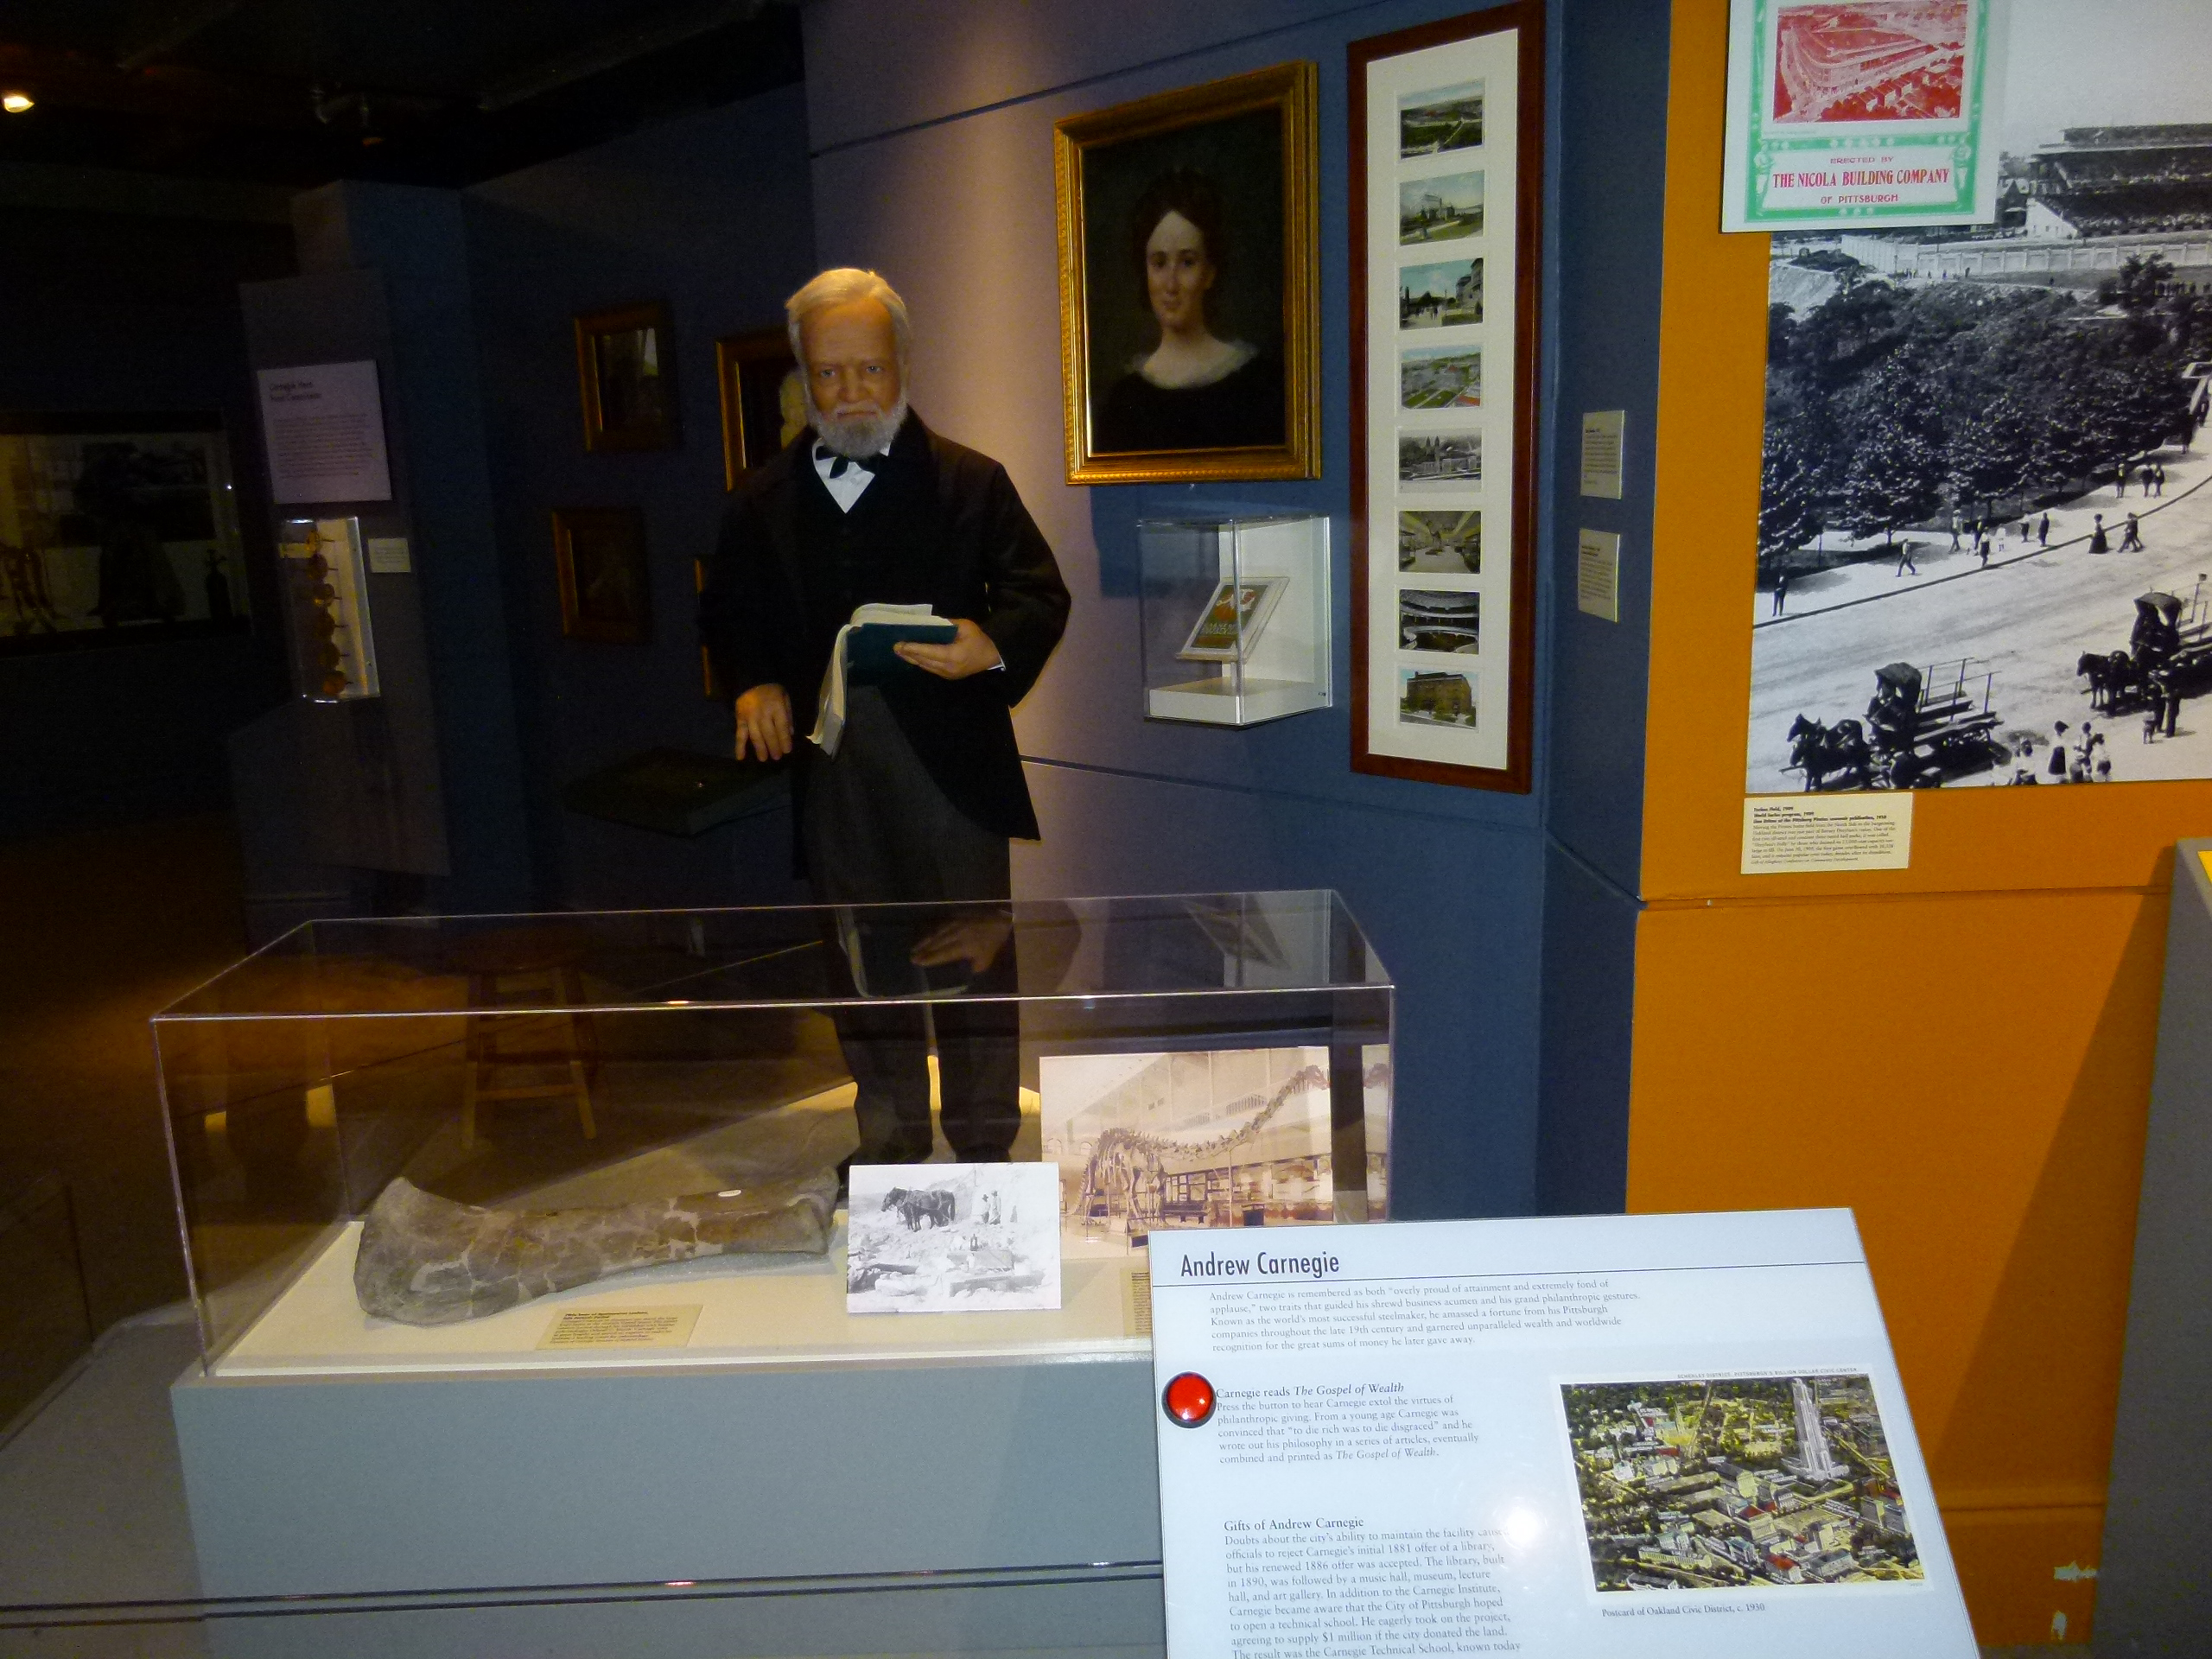 Pittsburgh industrialist Andrew Carnegie standing behind a dinosaur bone he funded the discovery of, and holding a book to signify his creation of Carnegie free Libraries.